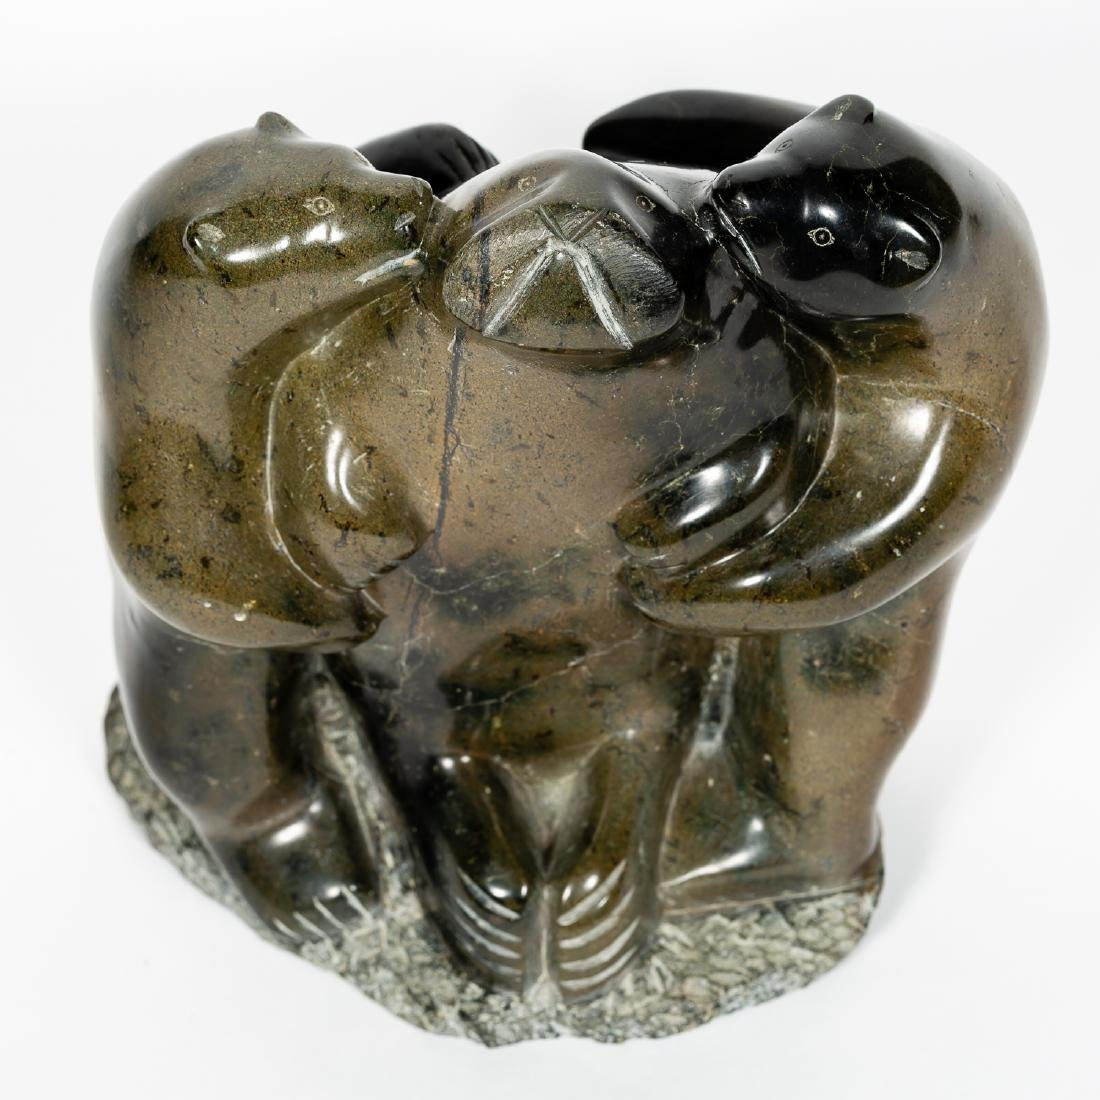 Carved Stone Inuit Sculpture, Two Bears & Seal - 4